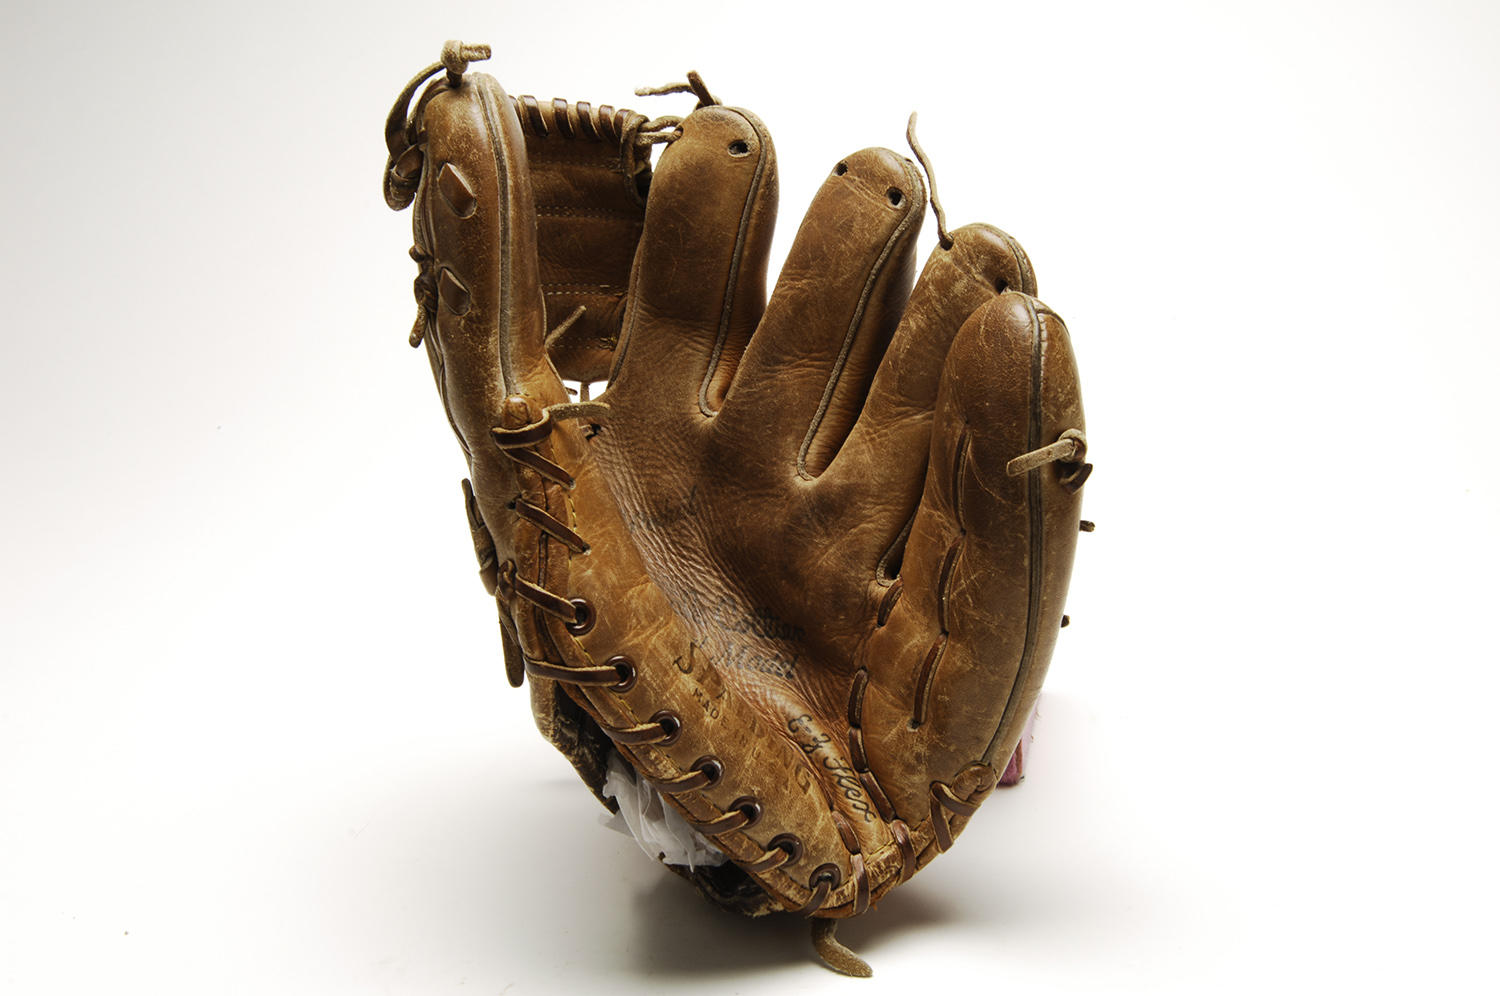 This glove, used during Ken Hubbs' 74th consecutive errorless game on Sept. 2, 1962, is currently preserved at the Hall of Fame. (By Photographer Milo Stewart Jr./National Baseball Hall of Fame and Museum)